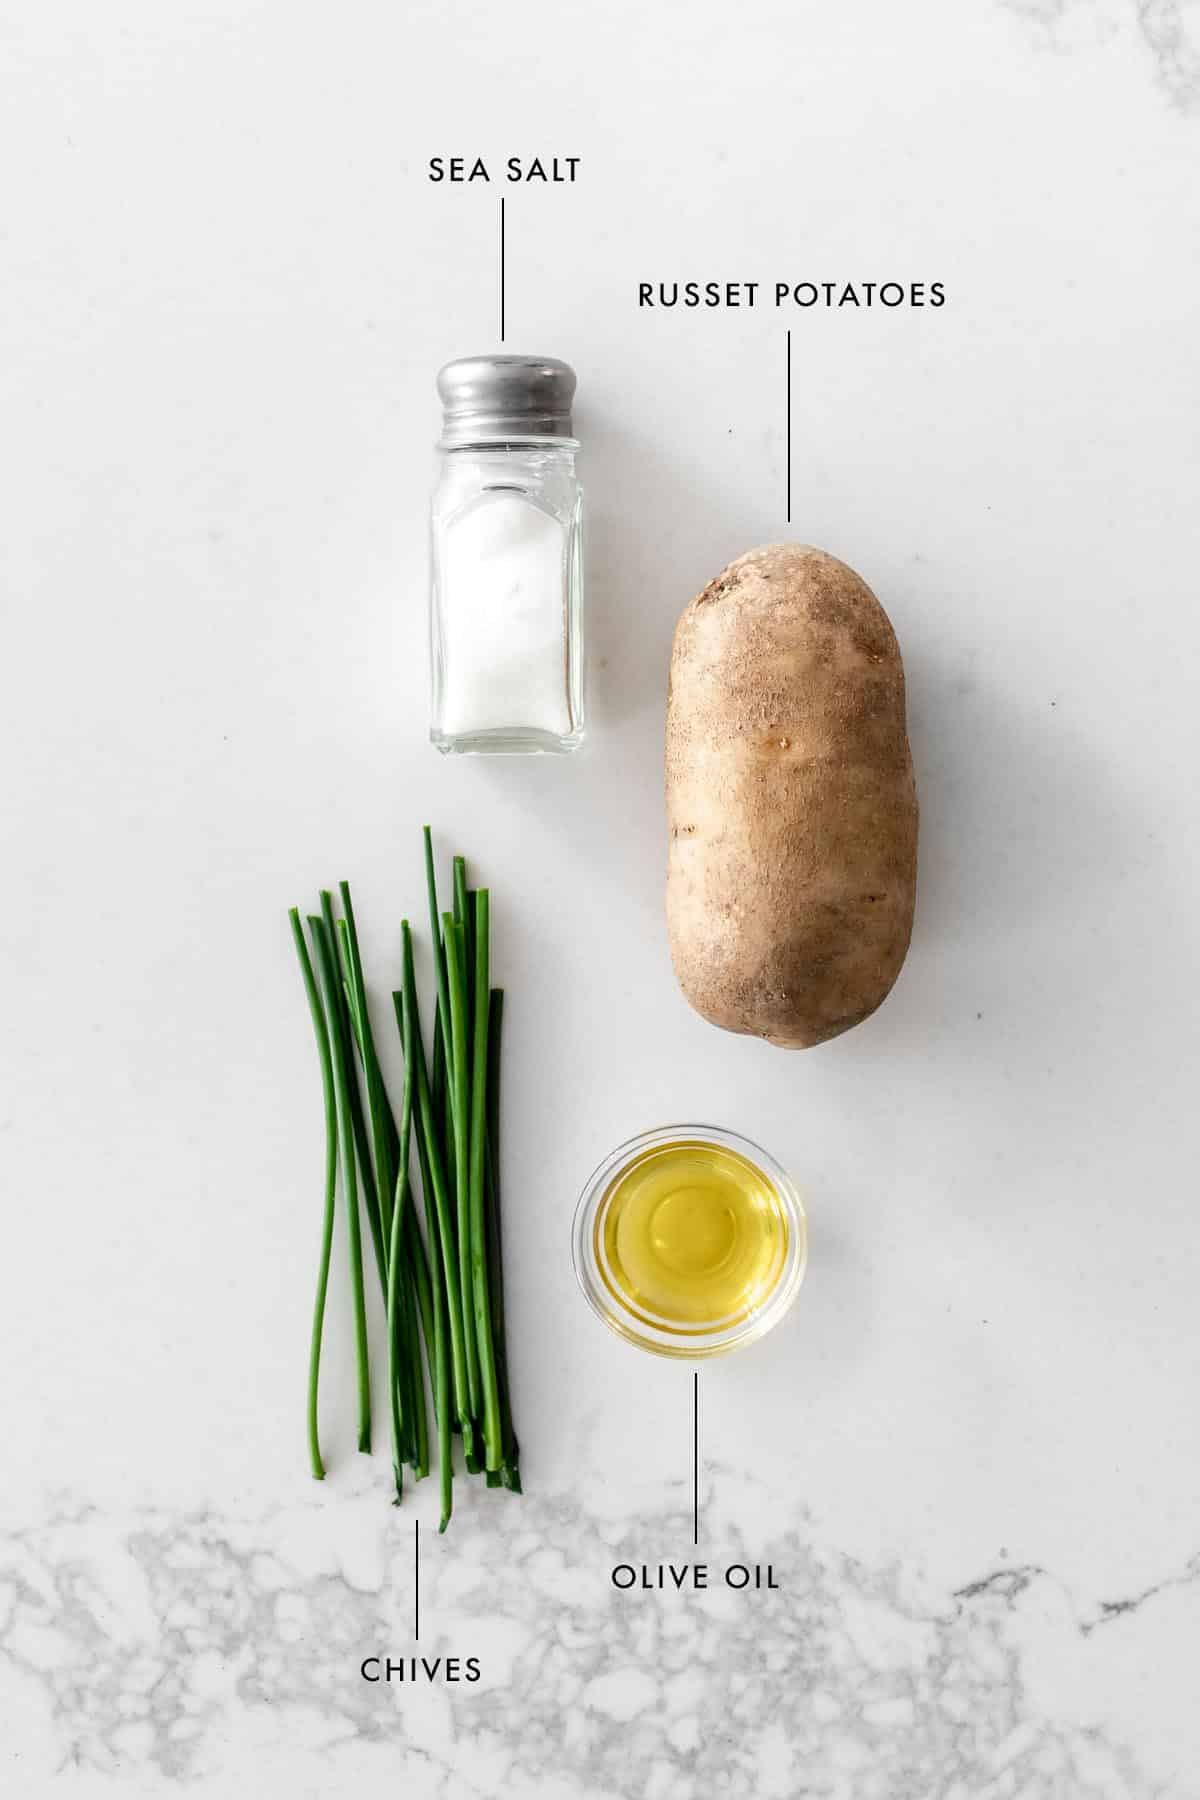 Salt shaker, russet potato, chives and olive oil flat lay with ingredient labels